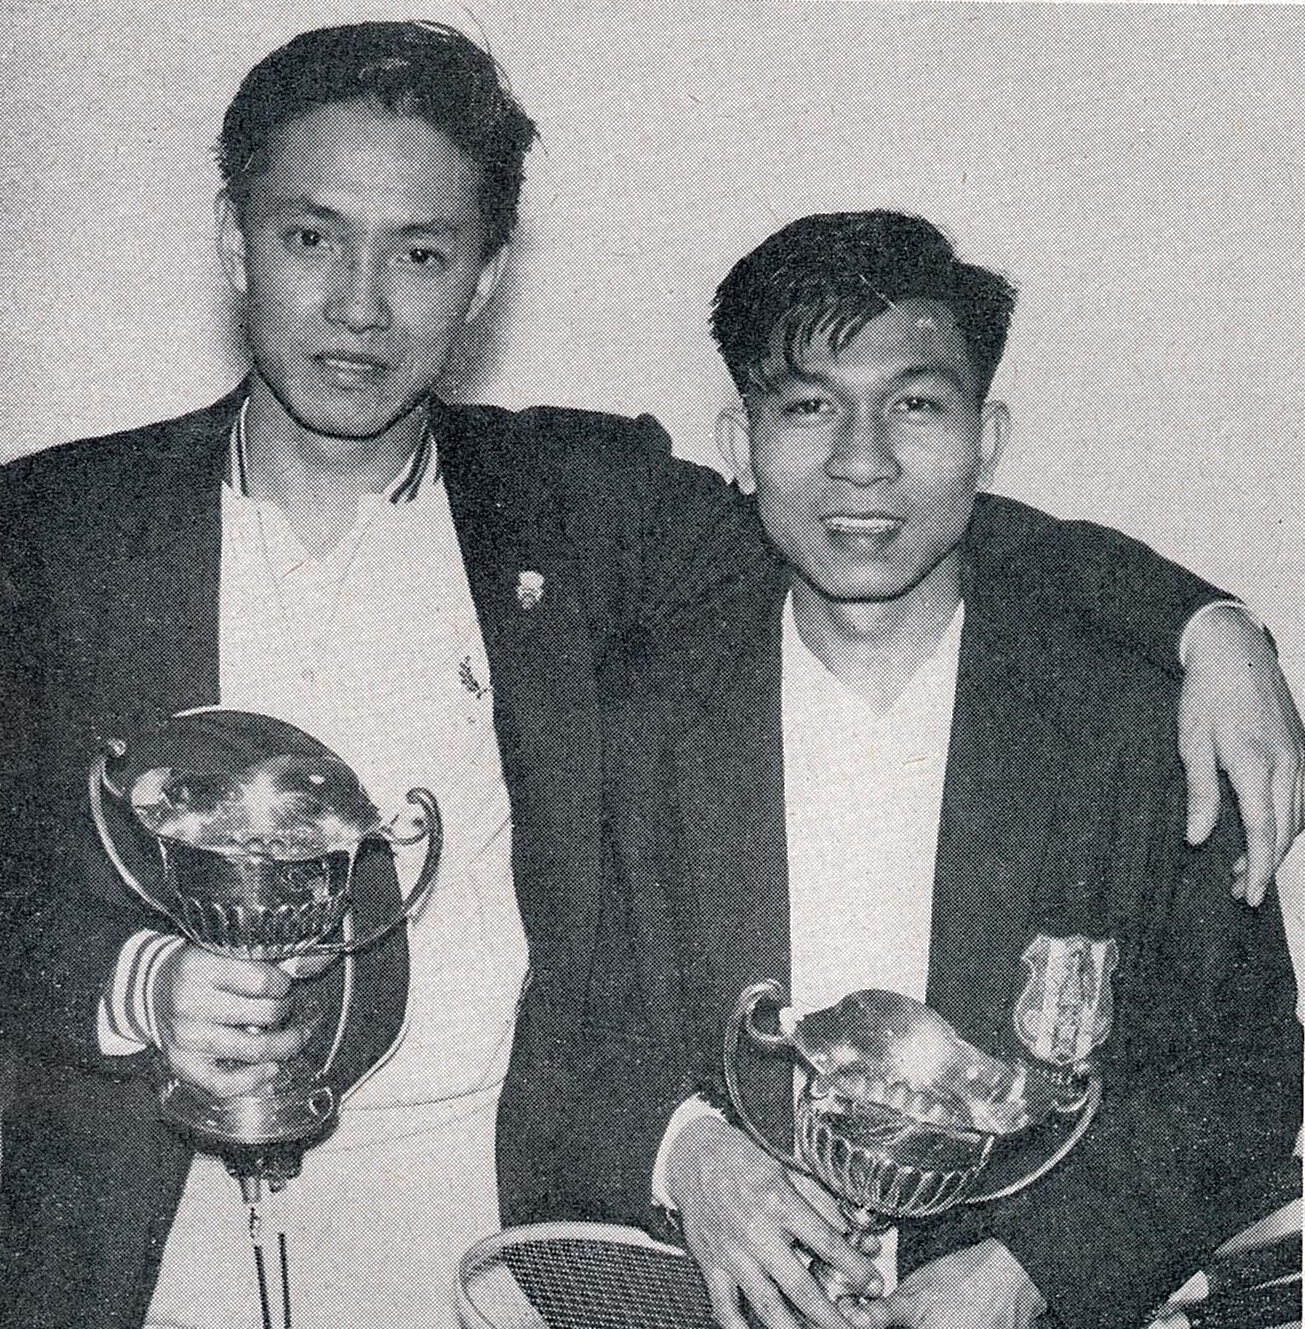 Charoen with partner t khadjadhai after northern cships doubles win - bg dec 1960